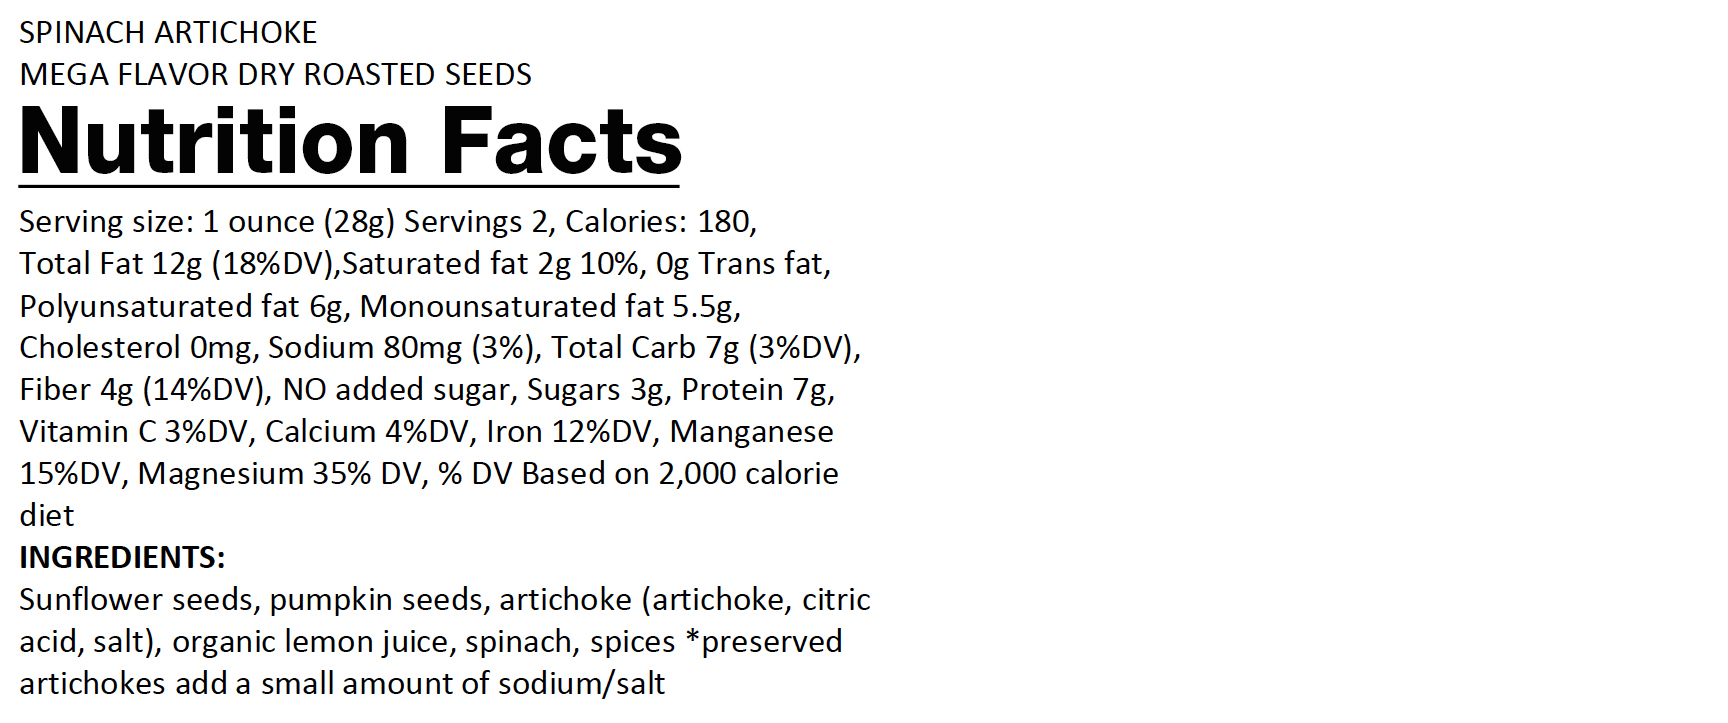 spinach-seeds-nut-facts.jpg